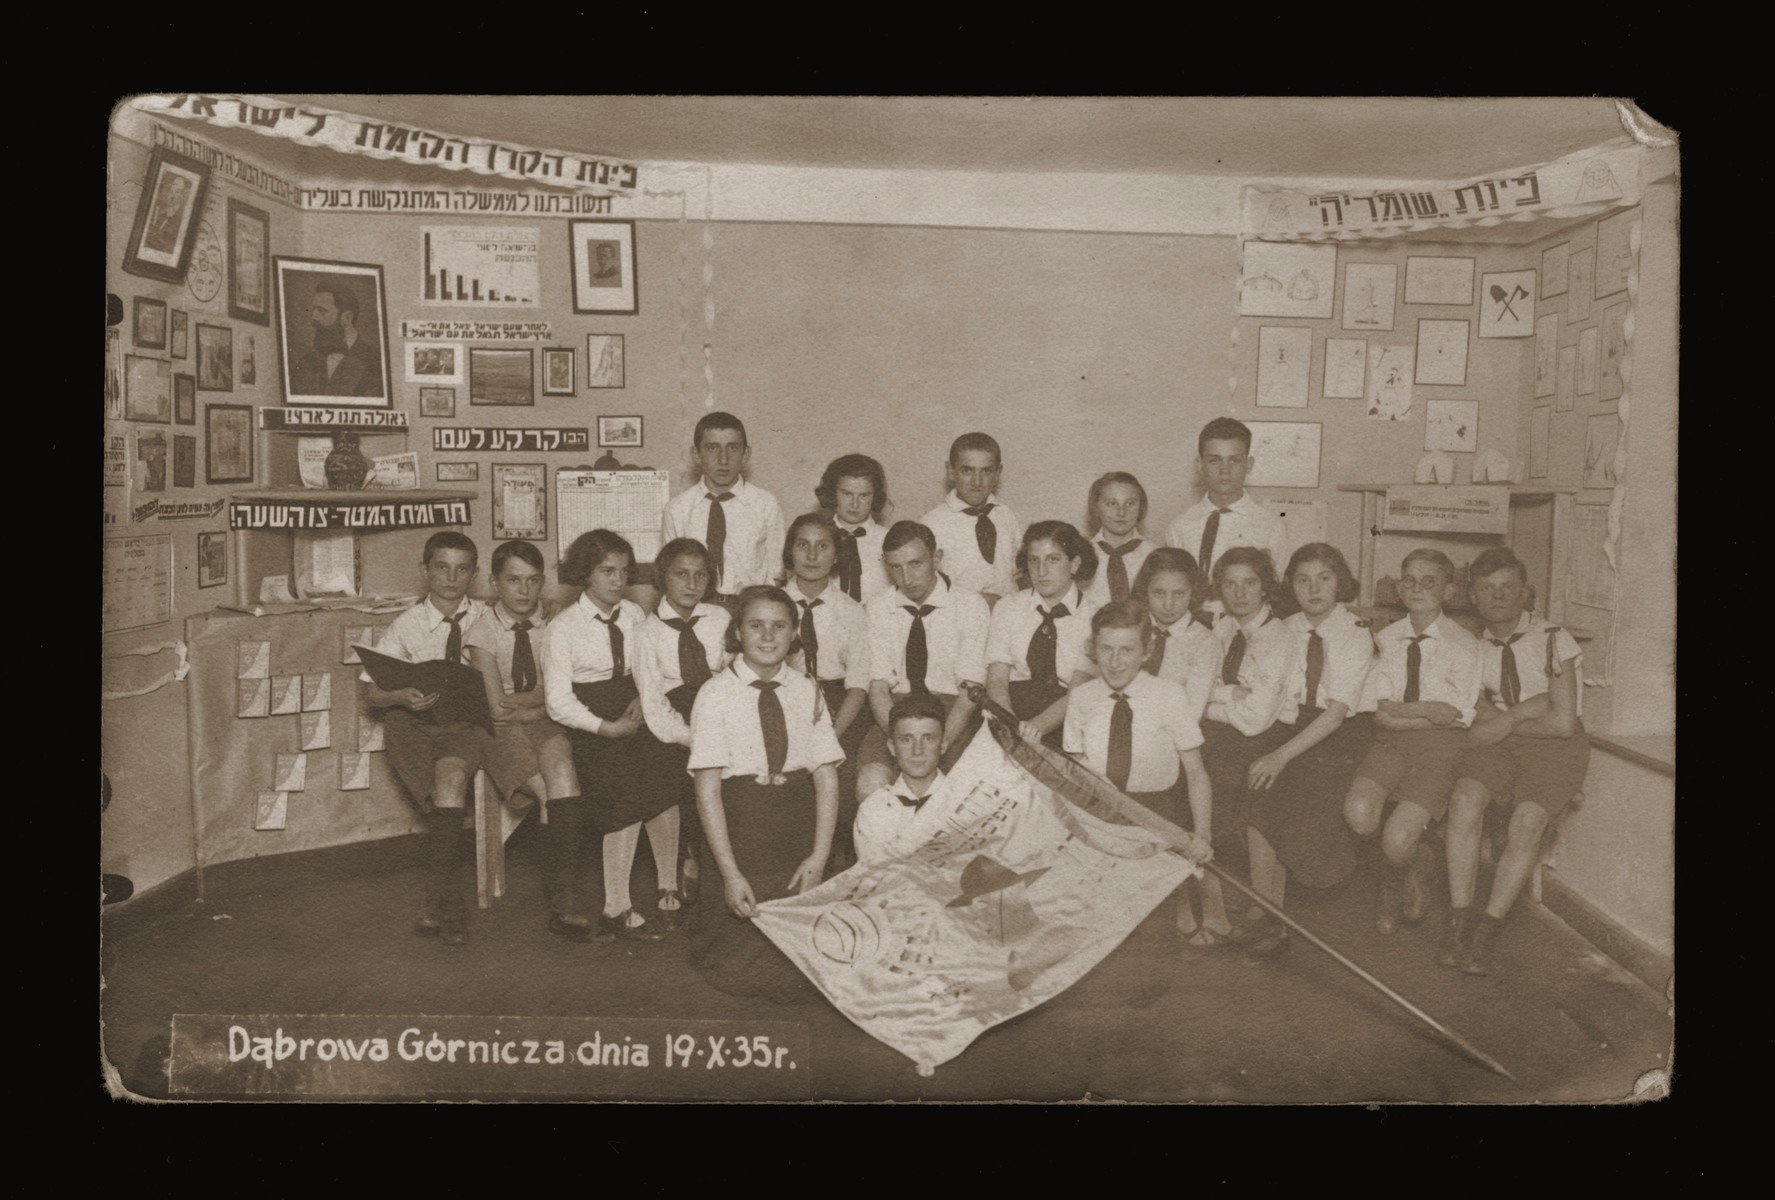 Members of the Hashomer Hatzair Zionist youth group in Dabrowa pose with a flag before a display about the Keren Kayemet [Jewish National Fund].  Among those pictured is Yisroel Miodownik (top row, left) and Esther Malach (holding the flag pole).